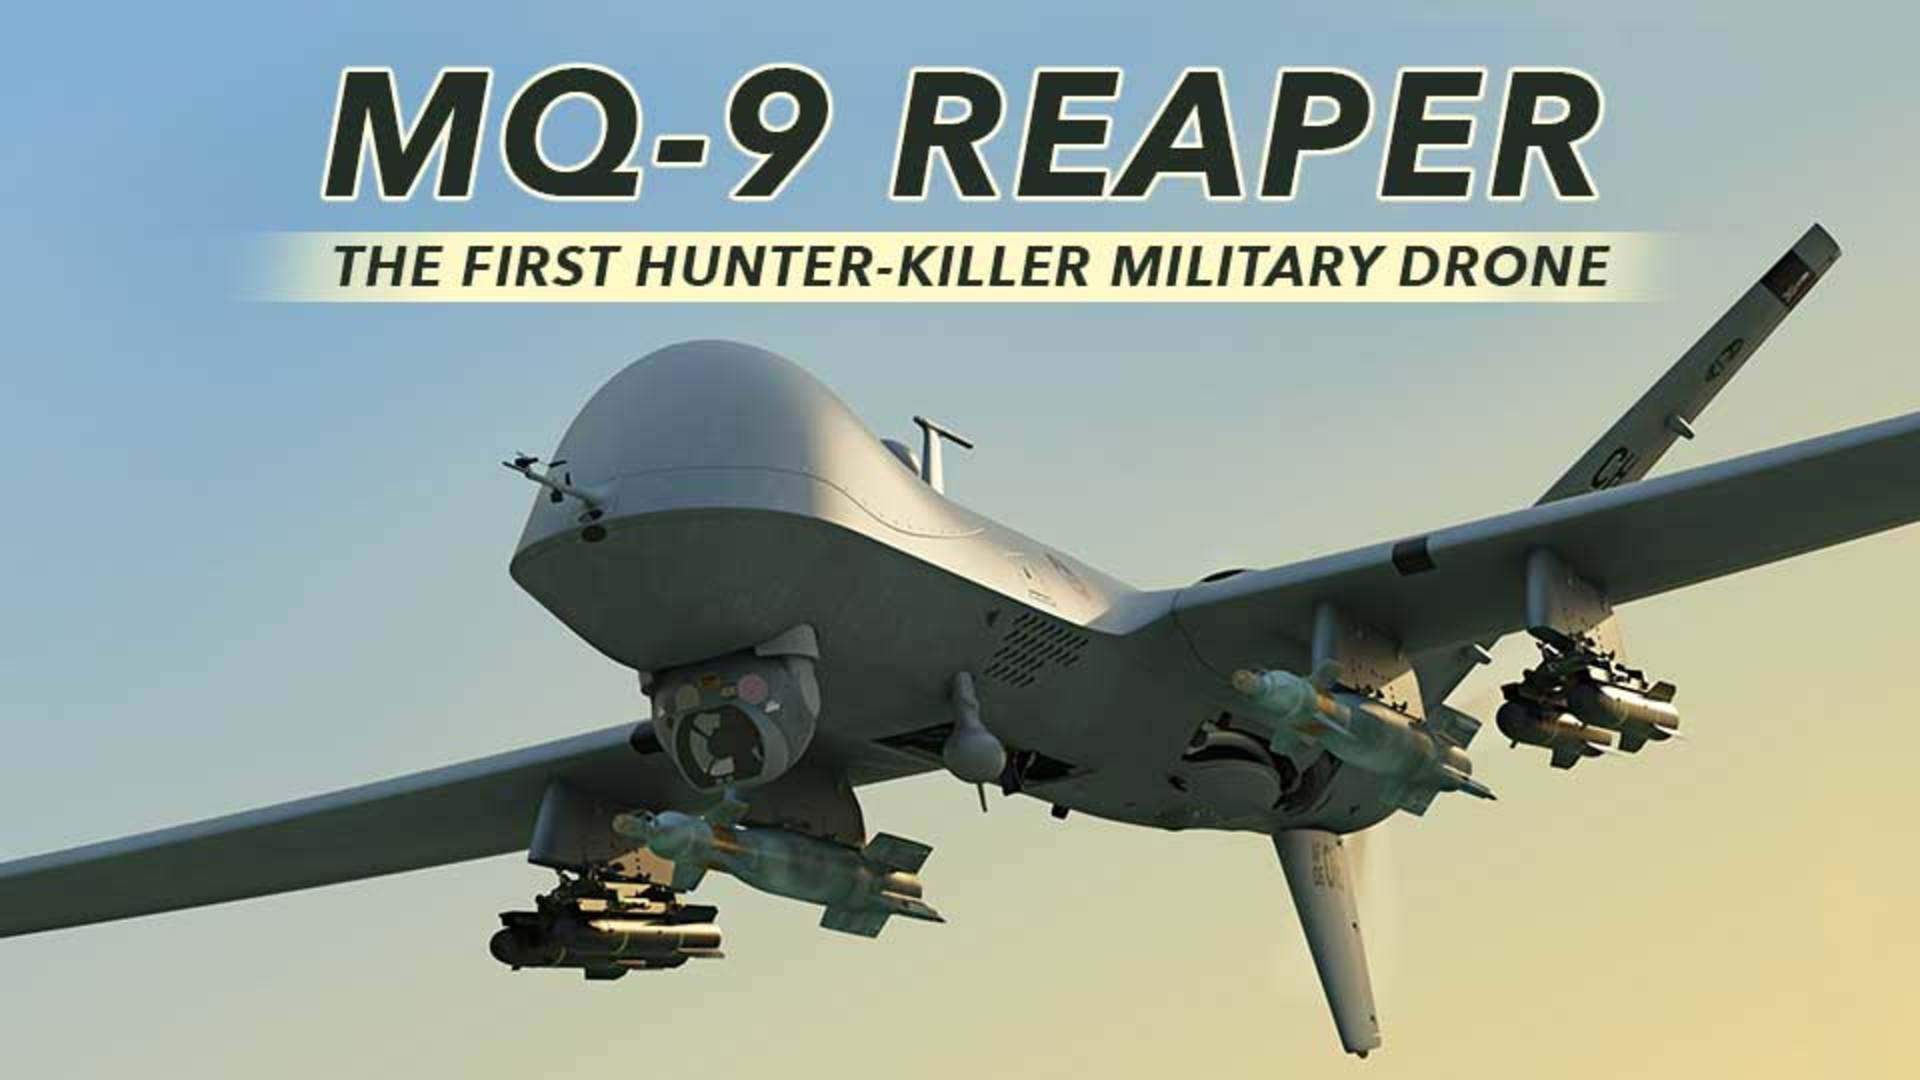 Mq 9 Reaper The First Hunter Killer Military Drone